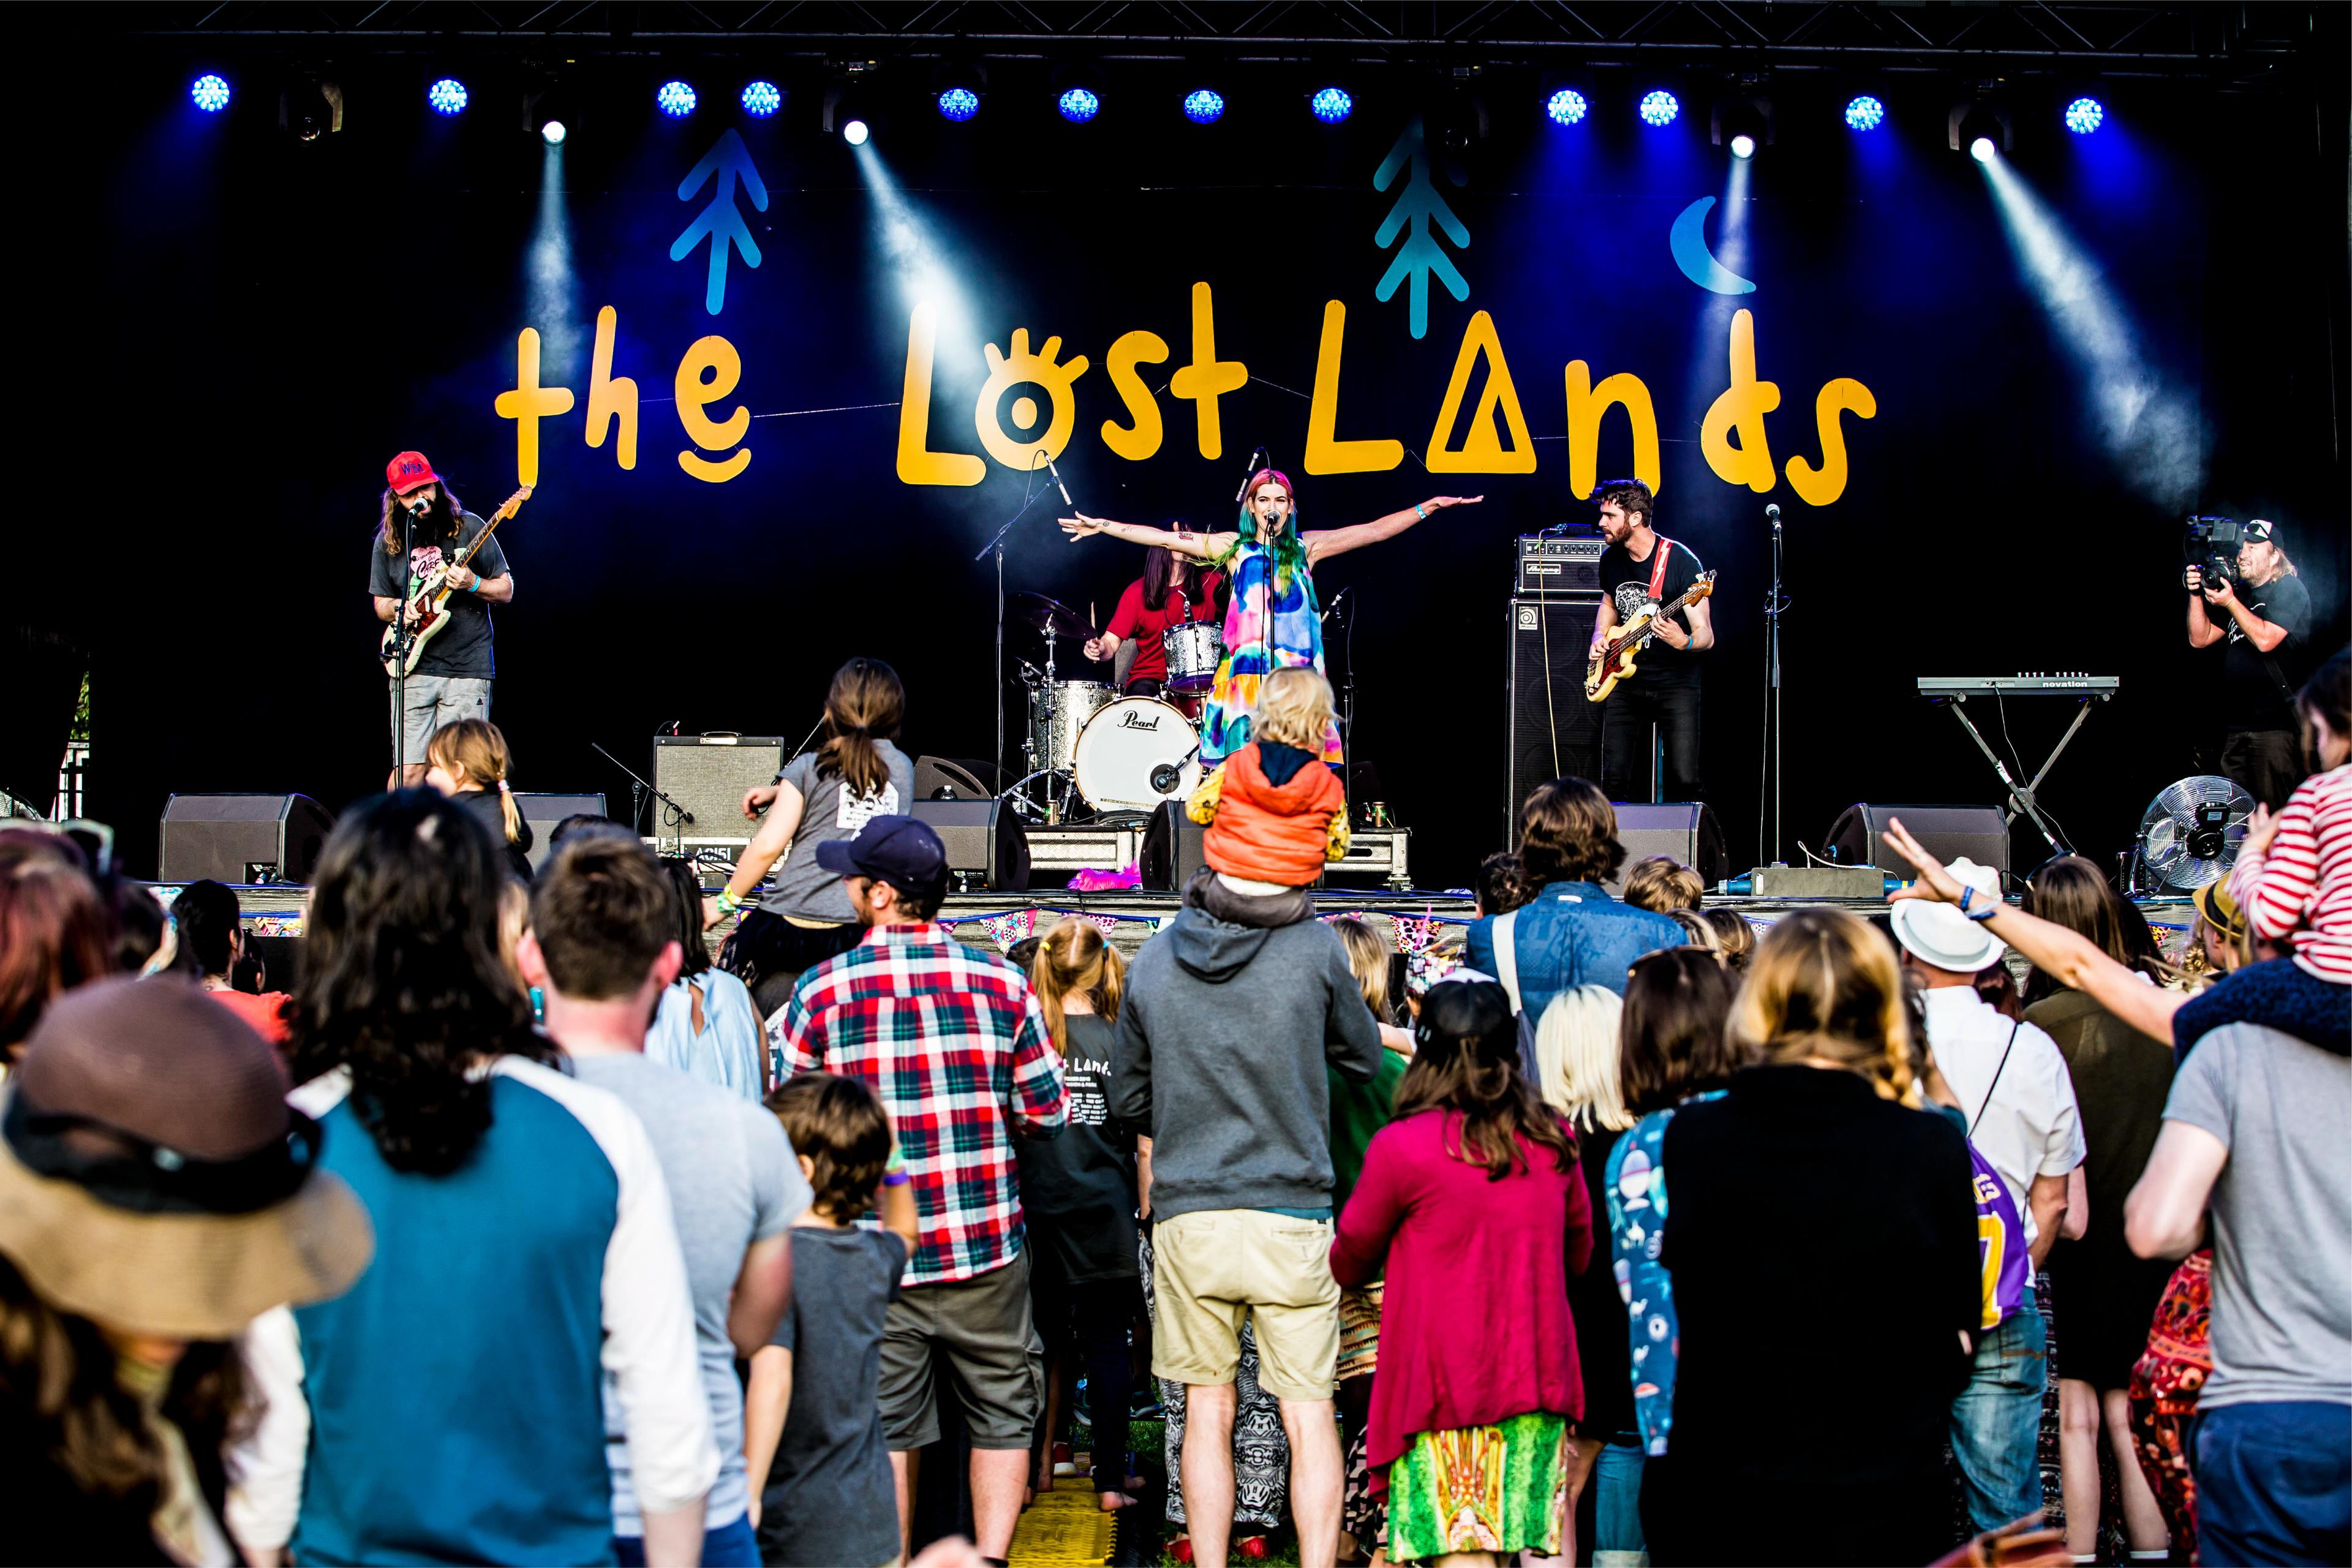 The Grates performing at The Lost Lands 2016